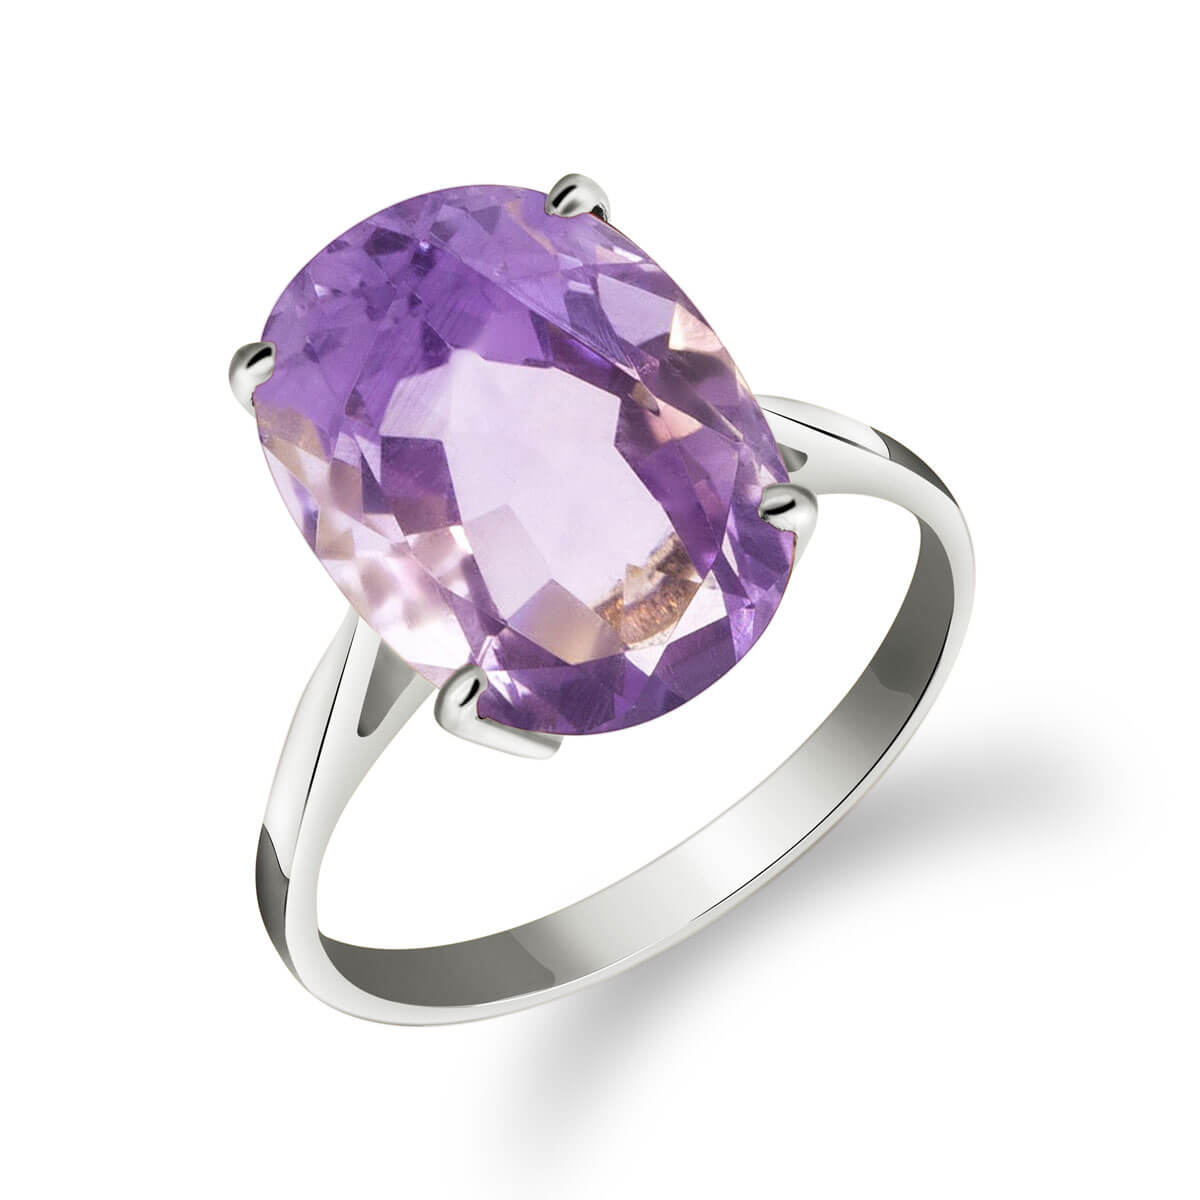 Amethyst Valiant Ring 7.55 ct in 9ct White Gold